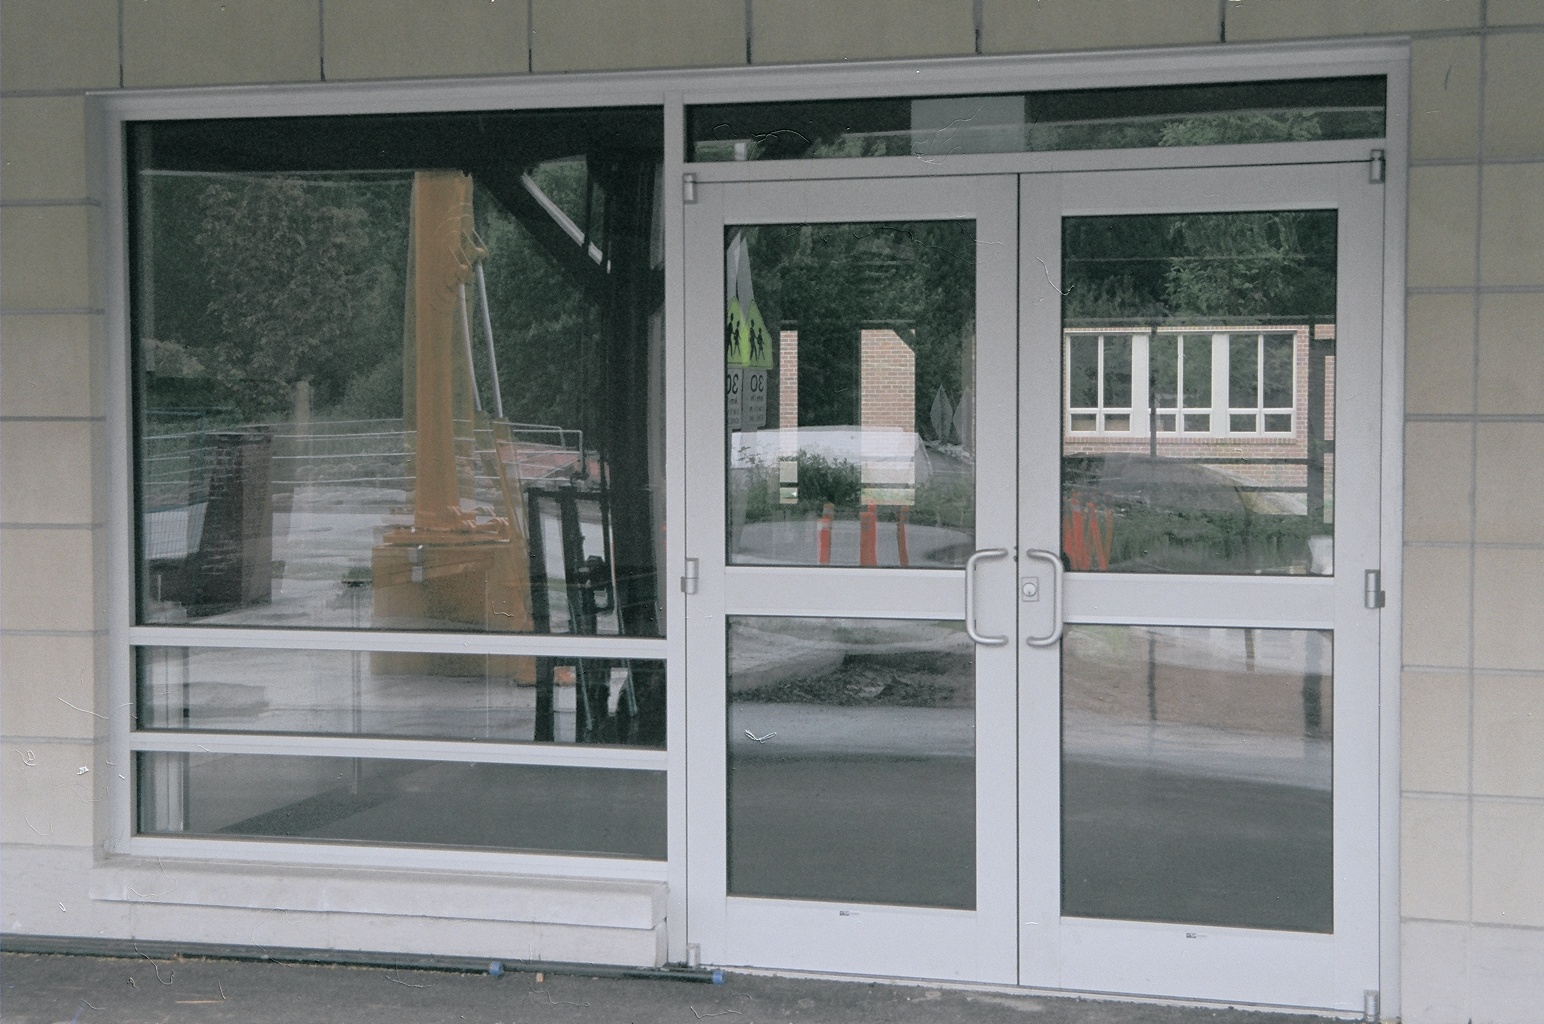 CommeTips for Choosing the Right Commercial Storefront Doors in Torontorcial Door Repair Toronto